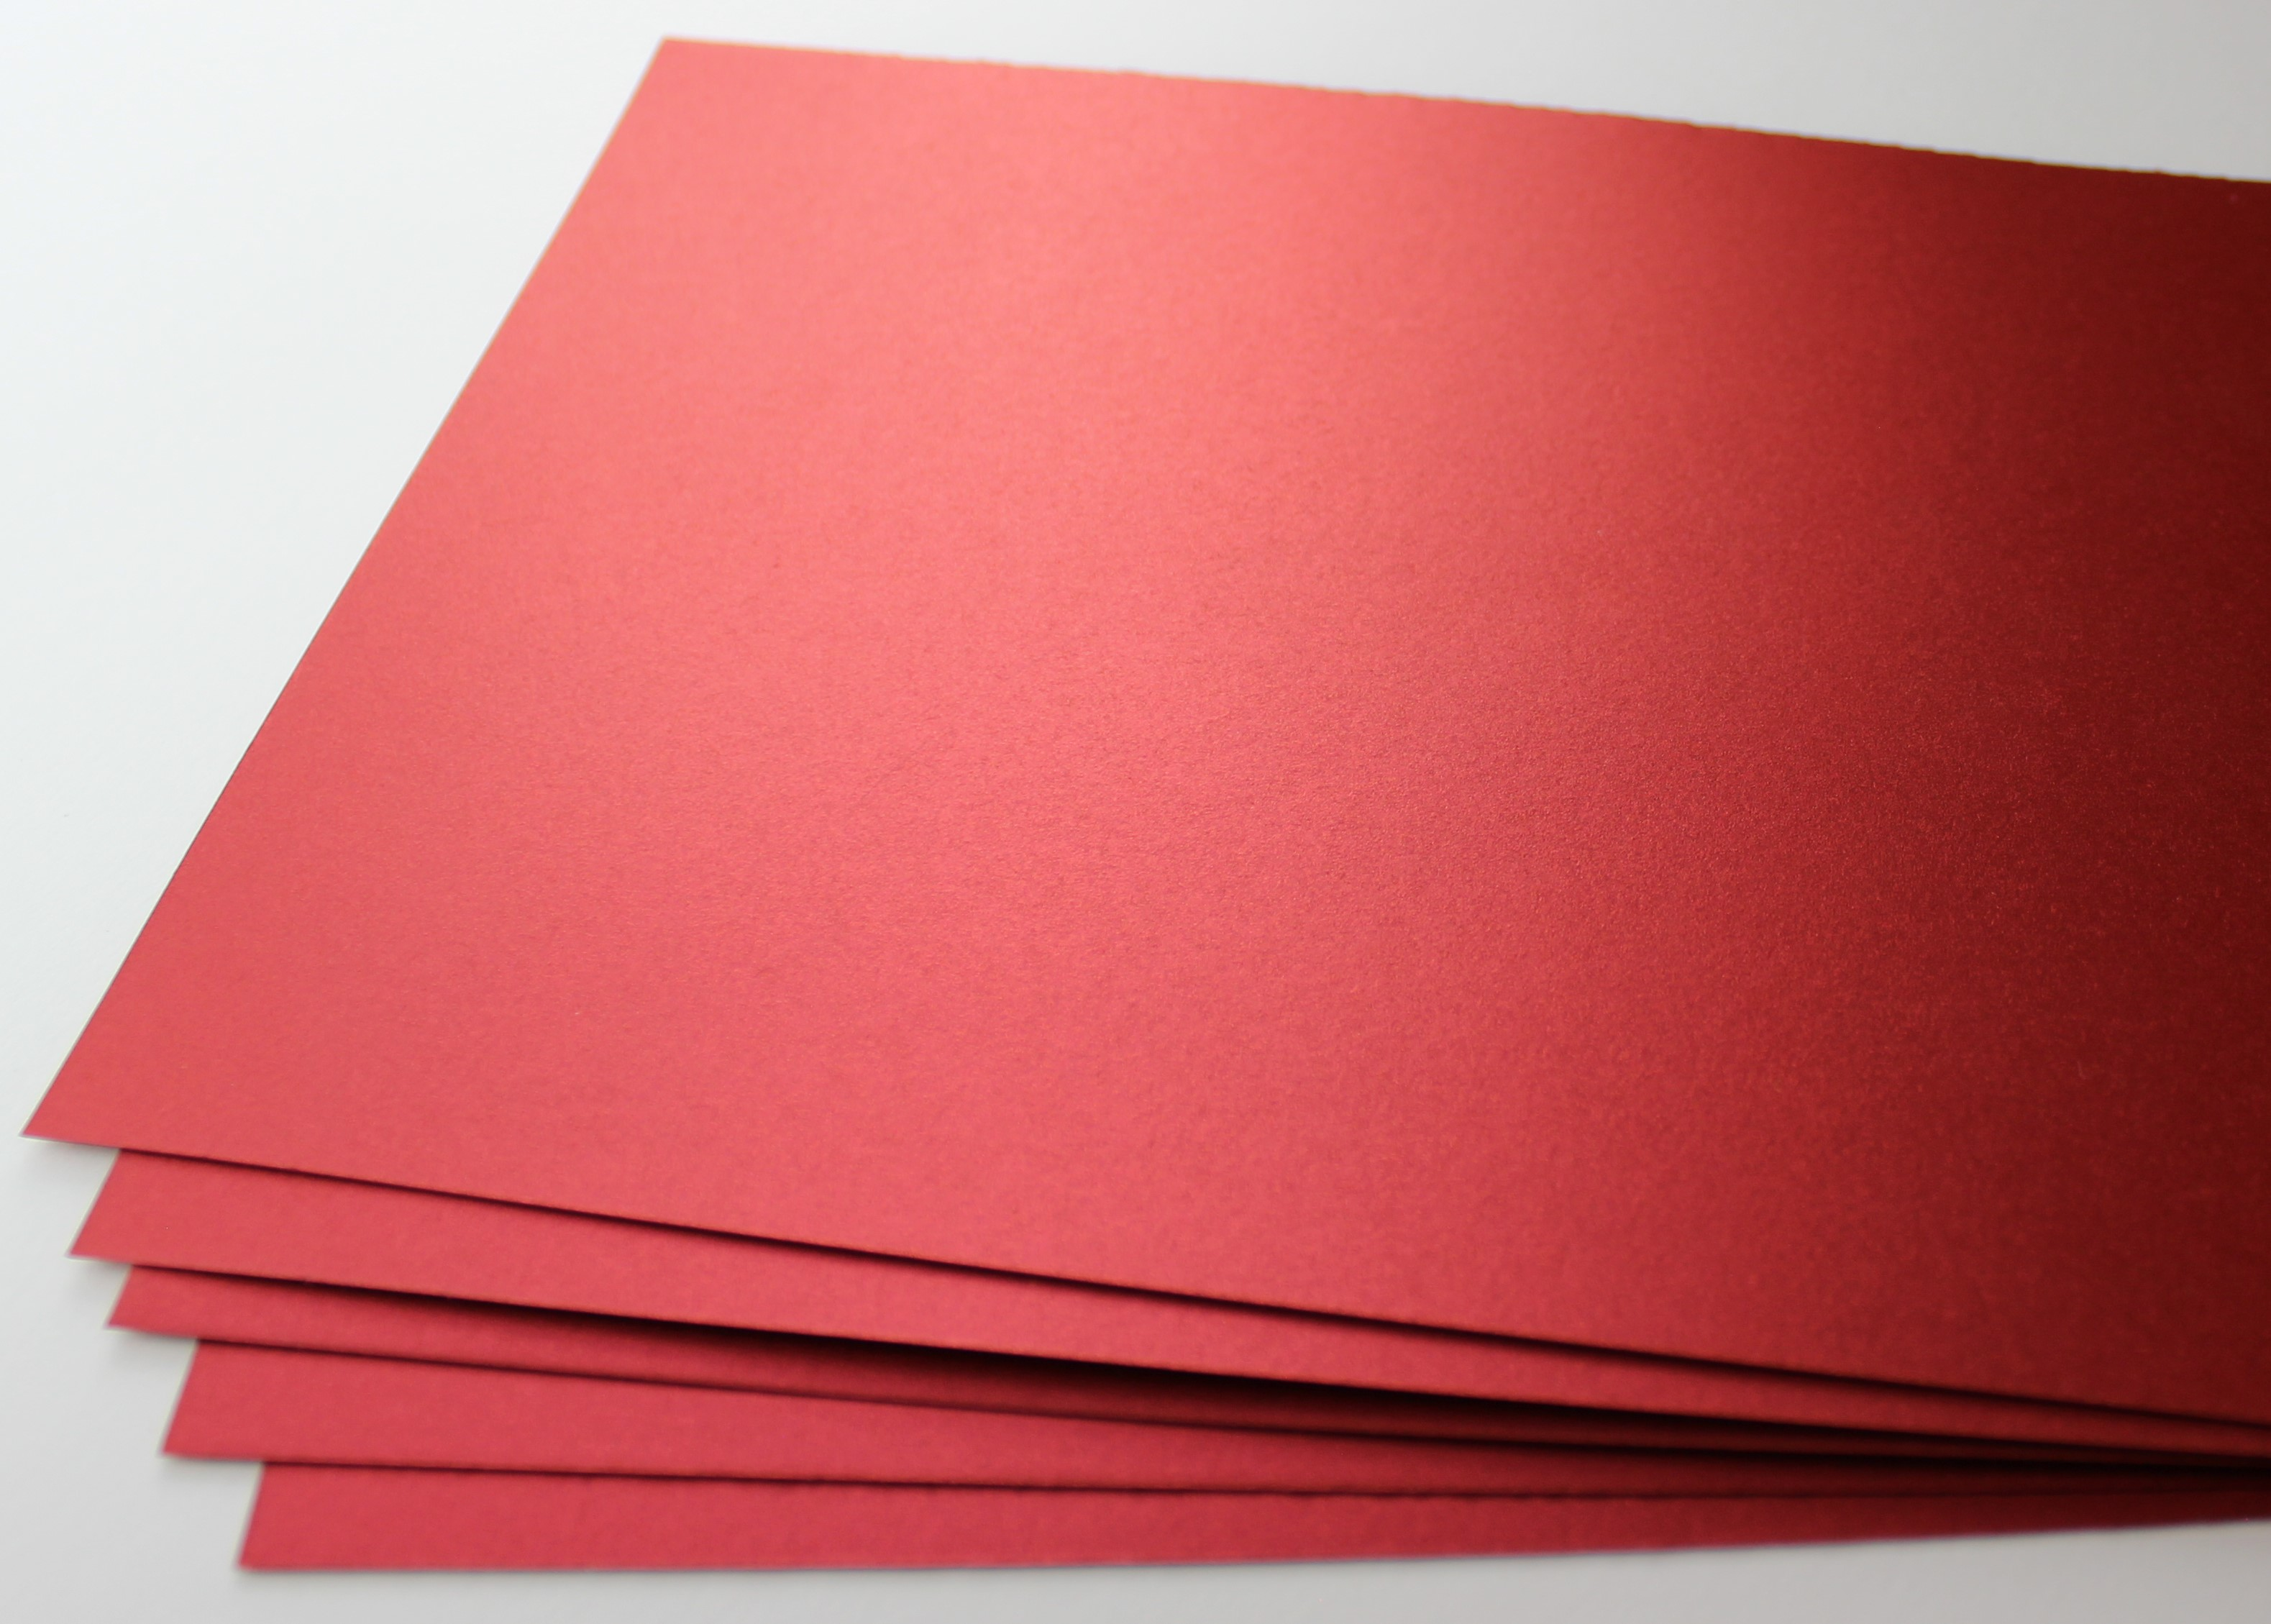 100 Blatt A2 (420x594mm) Inapa Shyne Papier 250 g/qm red diamond